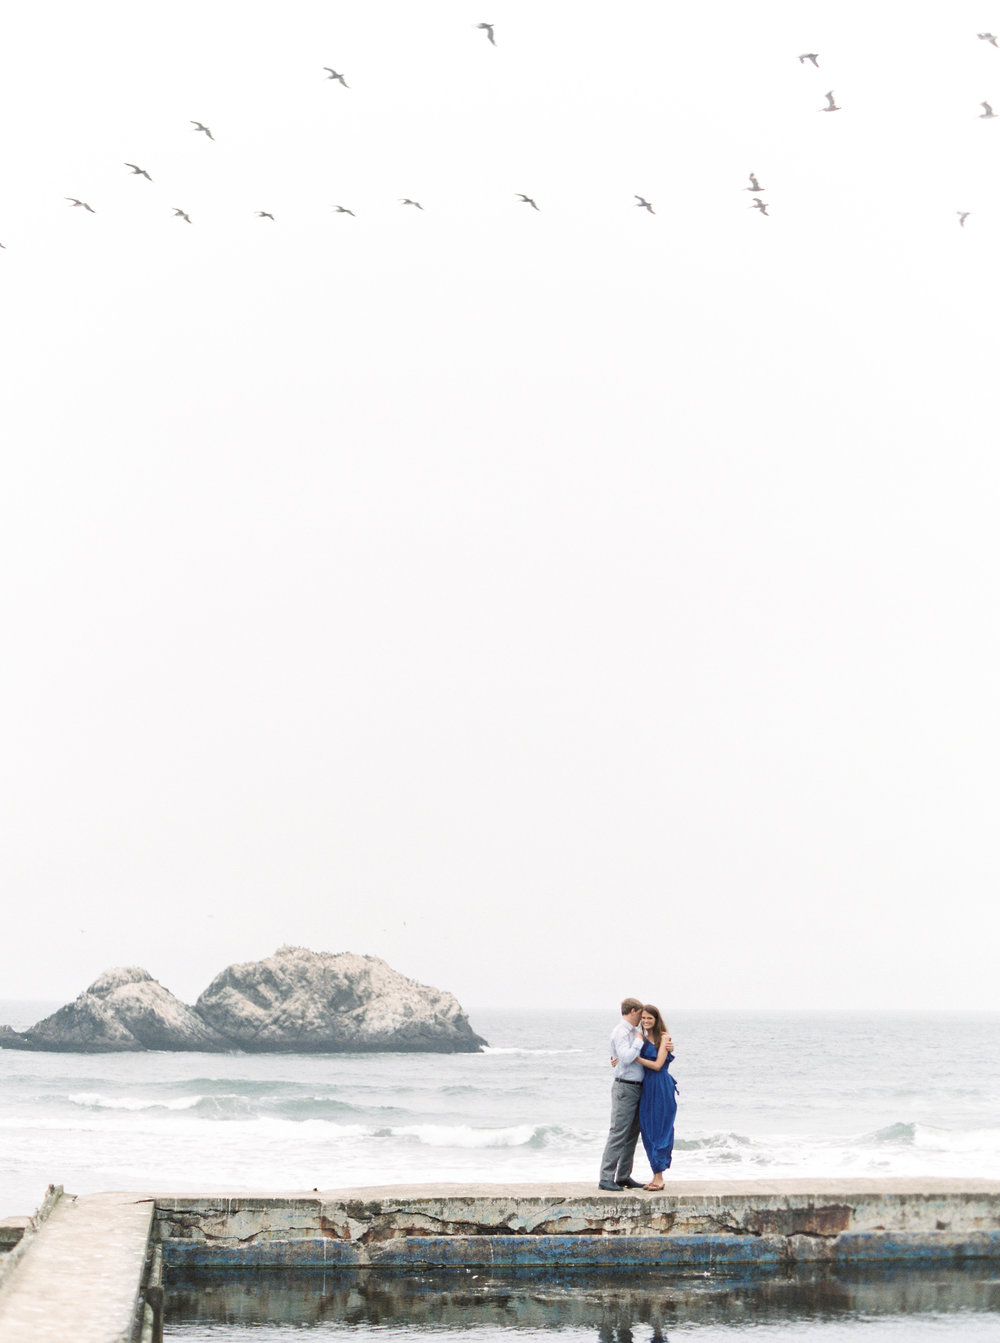 sutro-baths-san-francisco-california-engagement-14.jpg